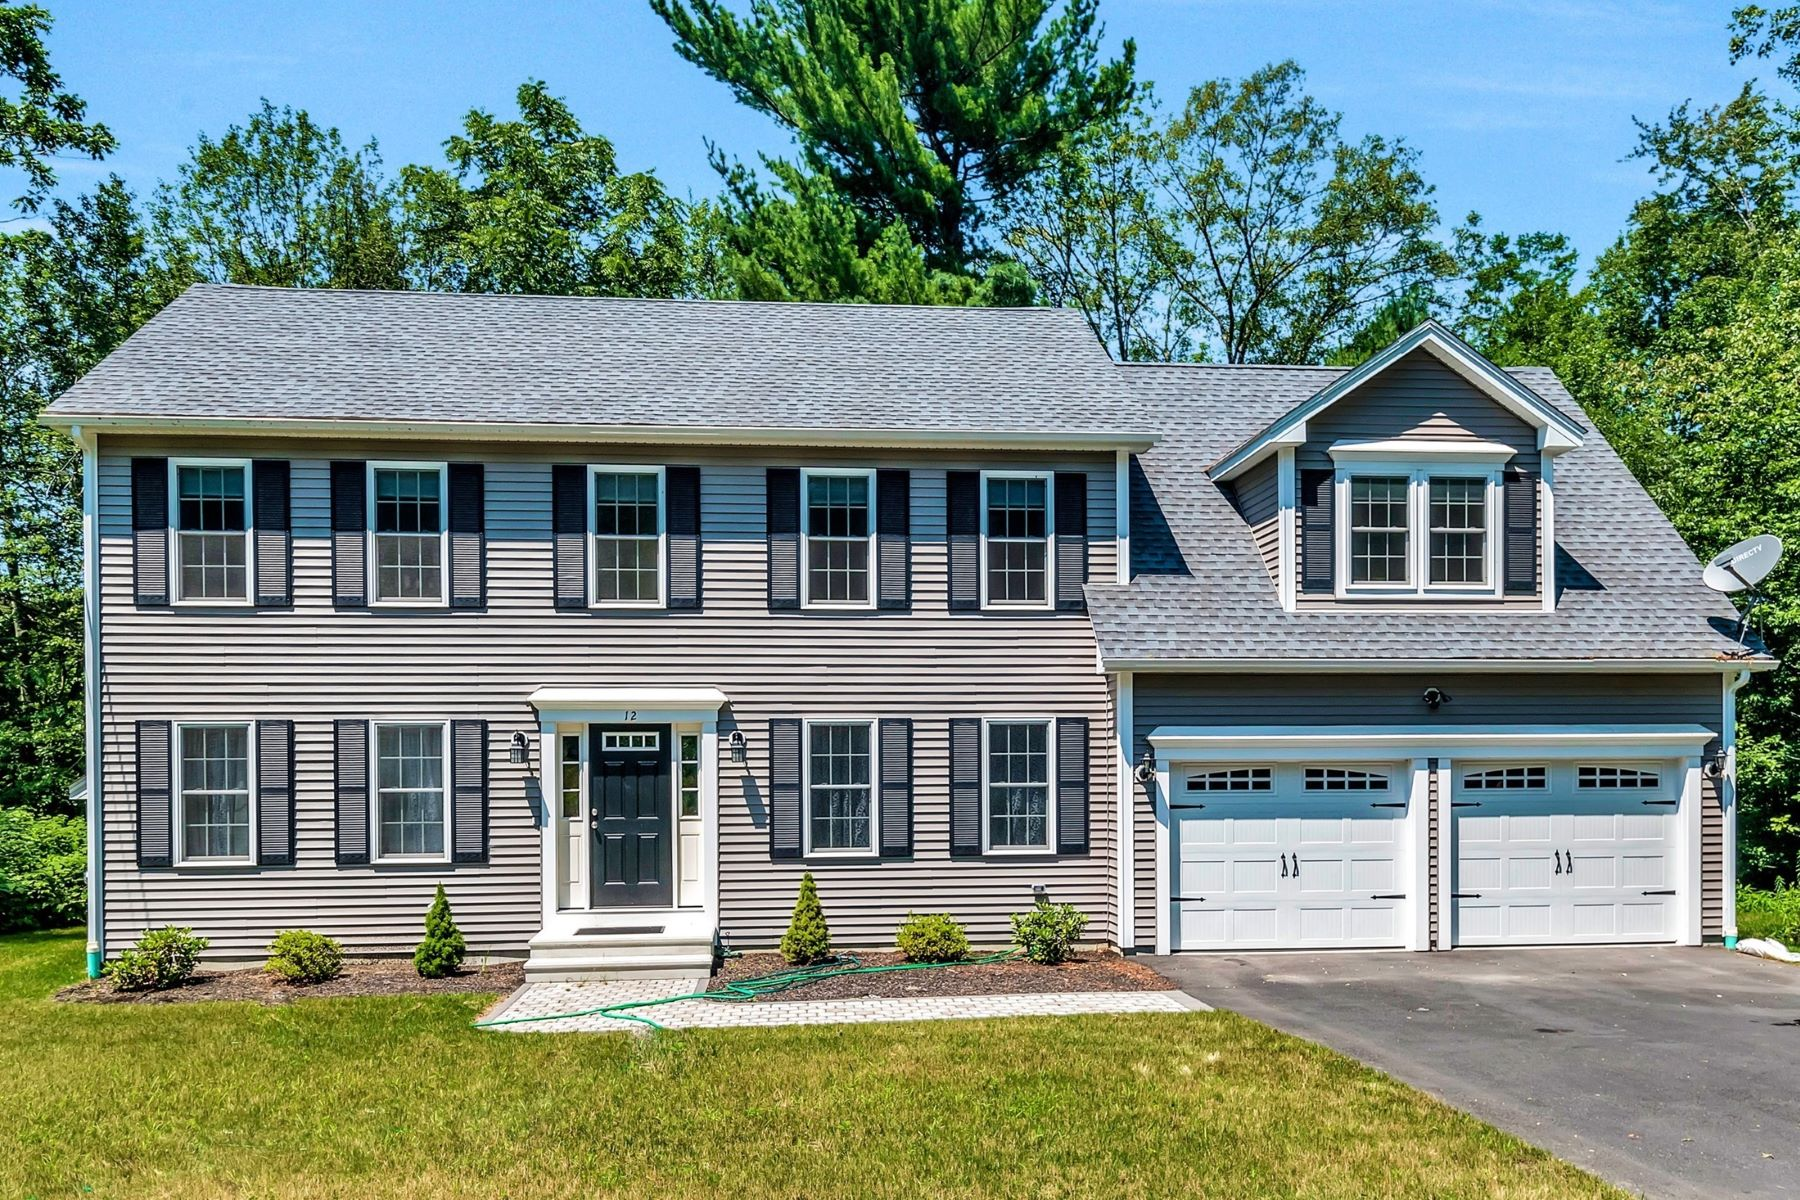 Single Family Home for Sale at Sun Filled Inviting Colonial 12 Bicknell Road North Grafton, Massachusetts 01536 United States